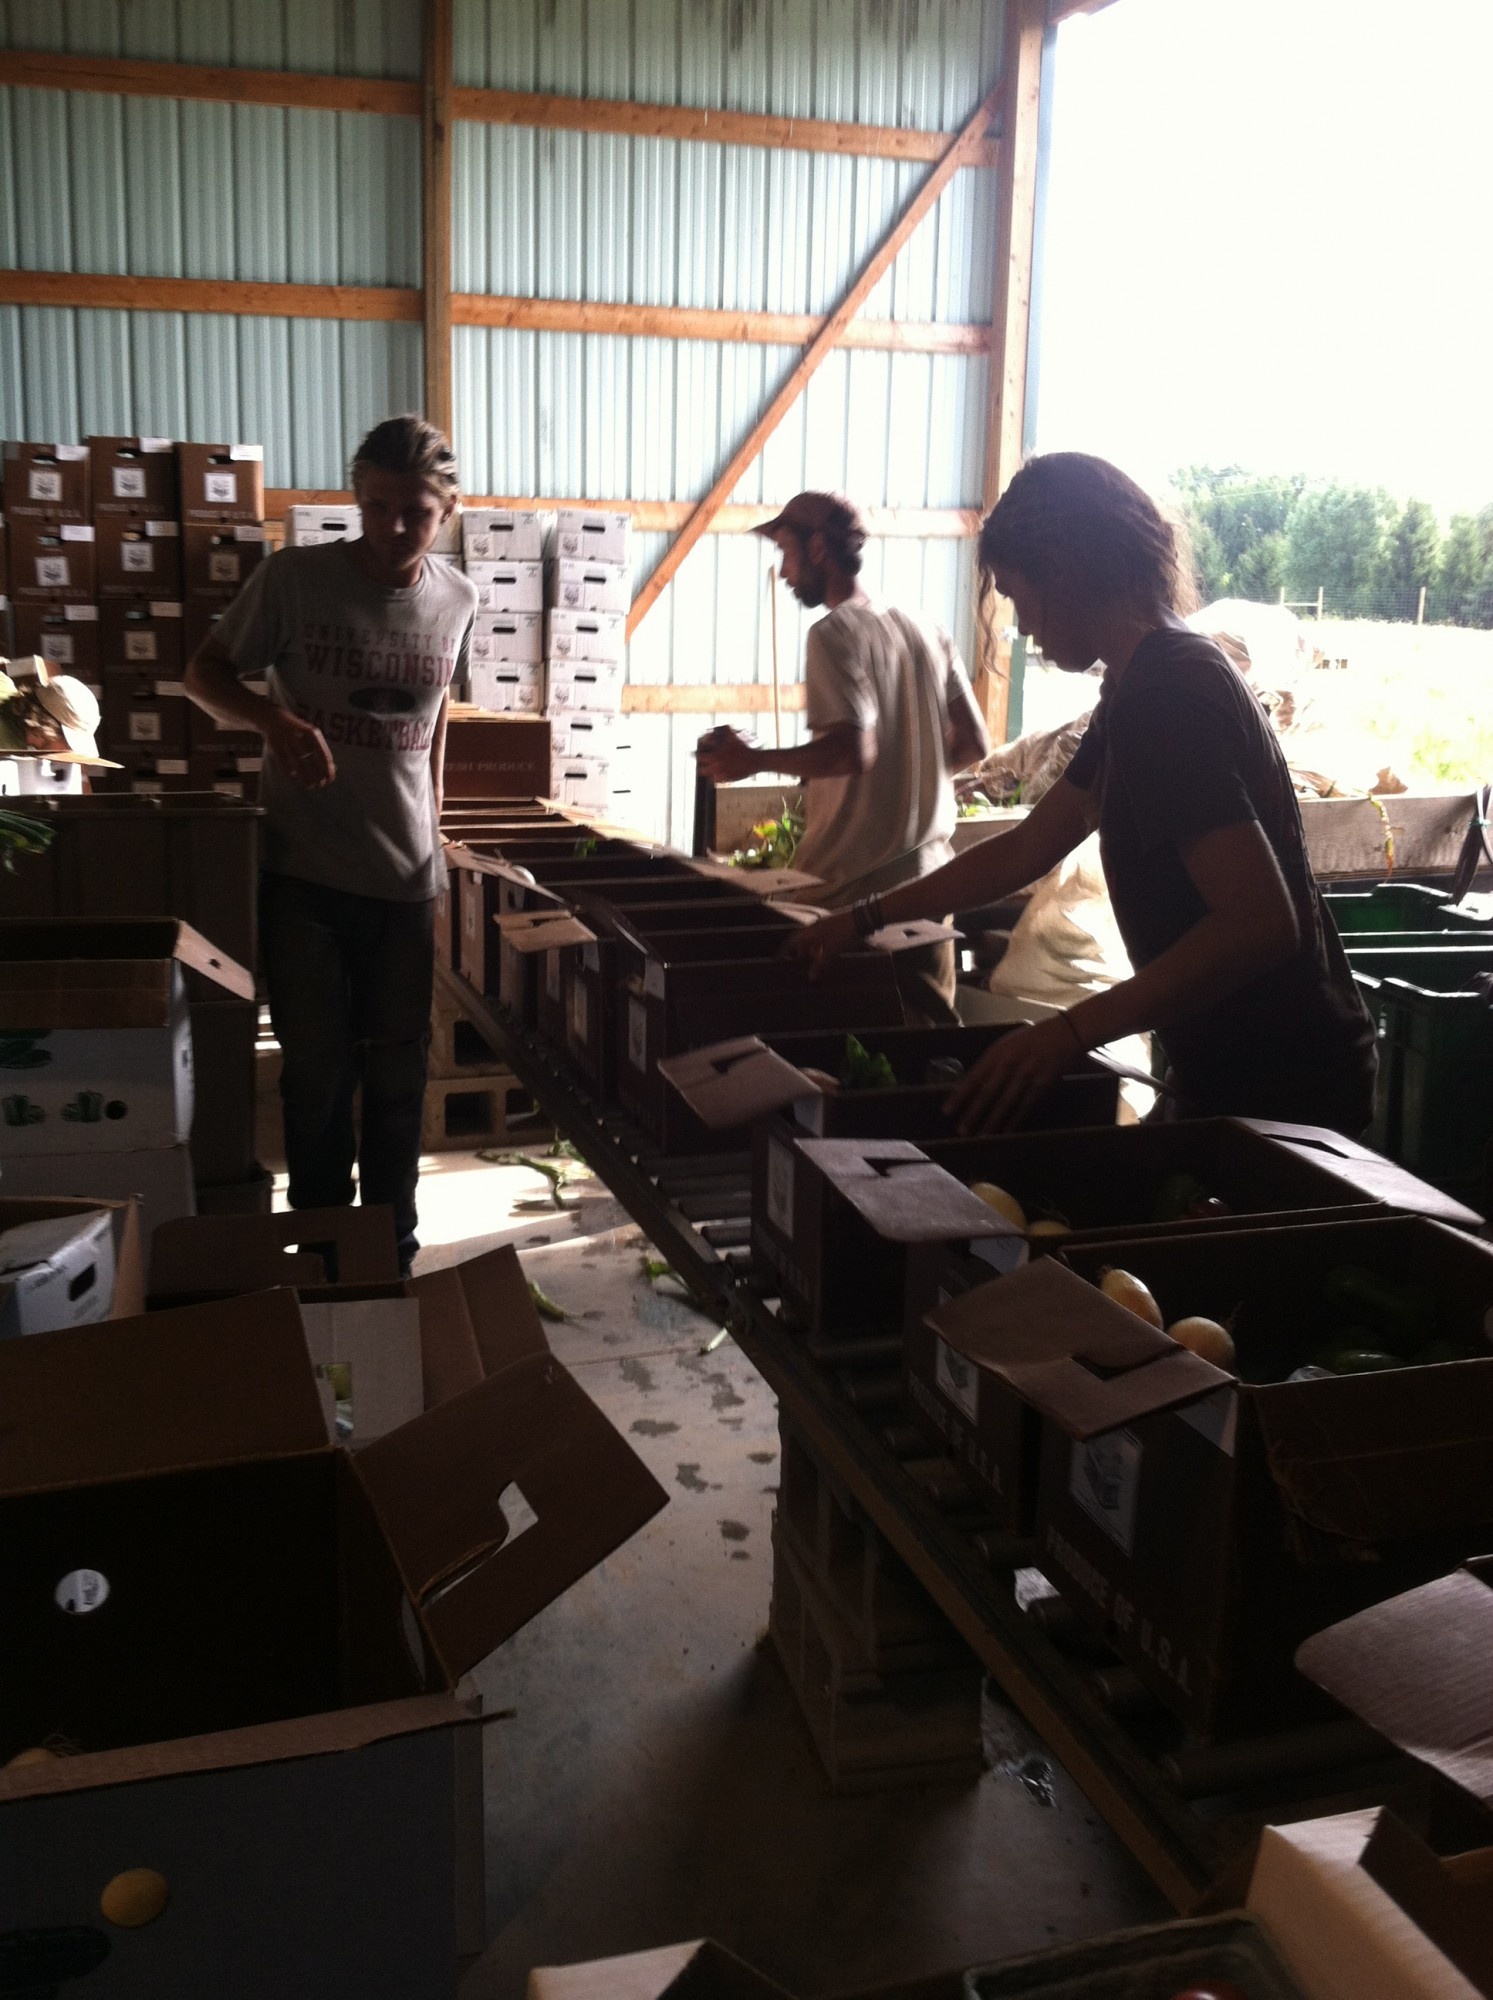 box packing time